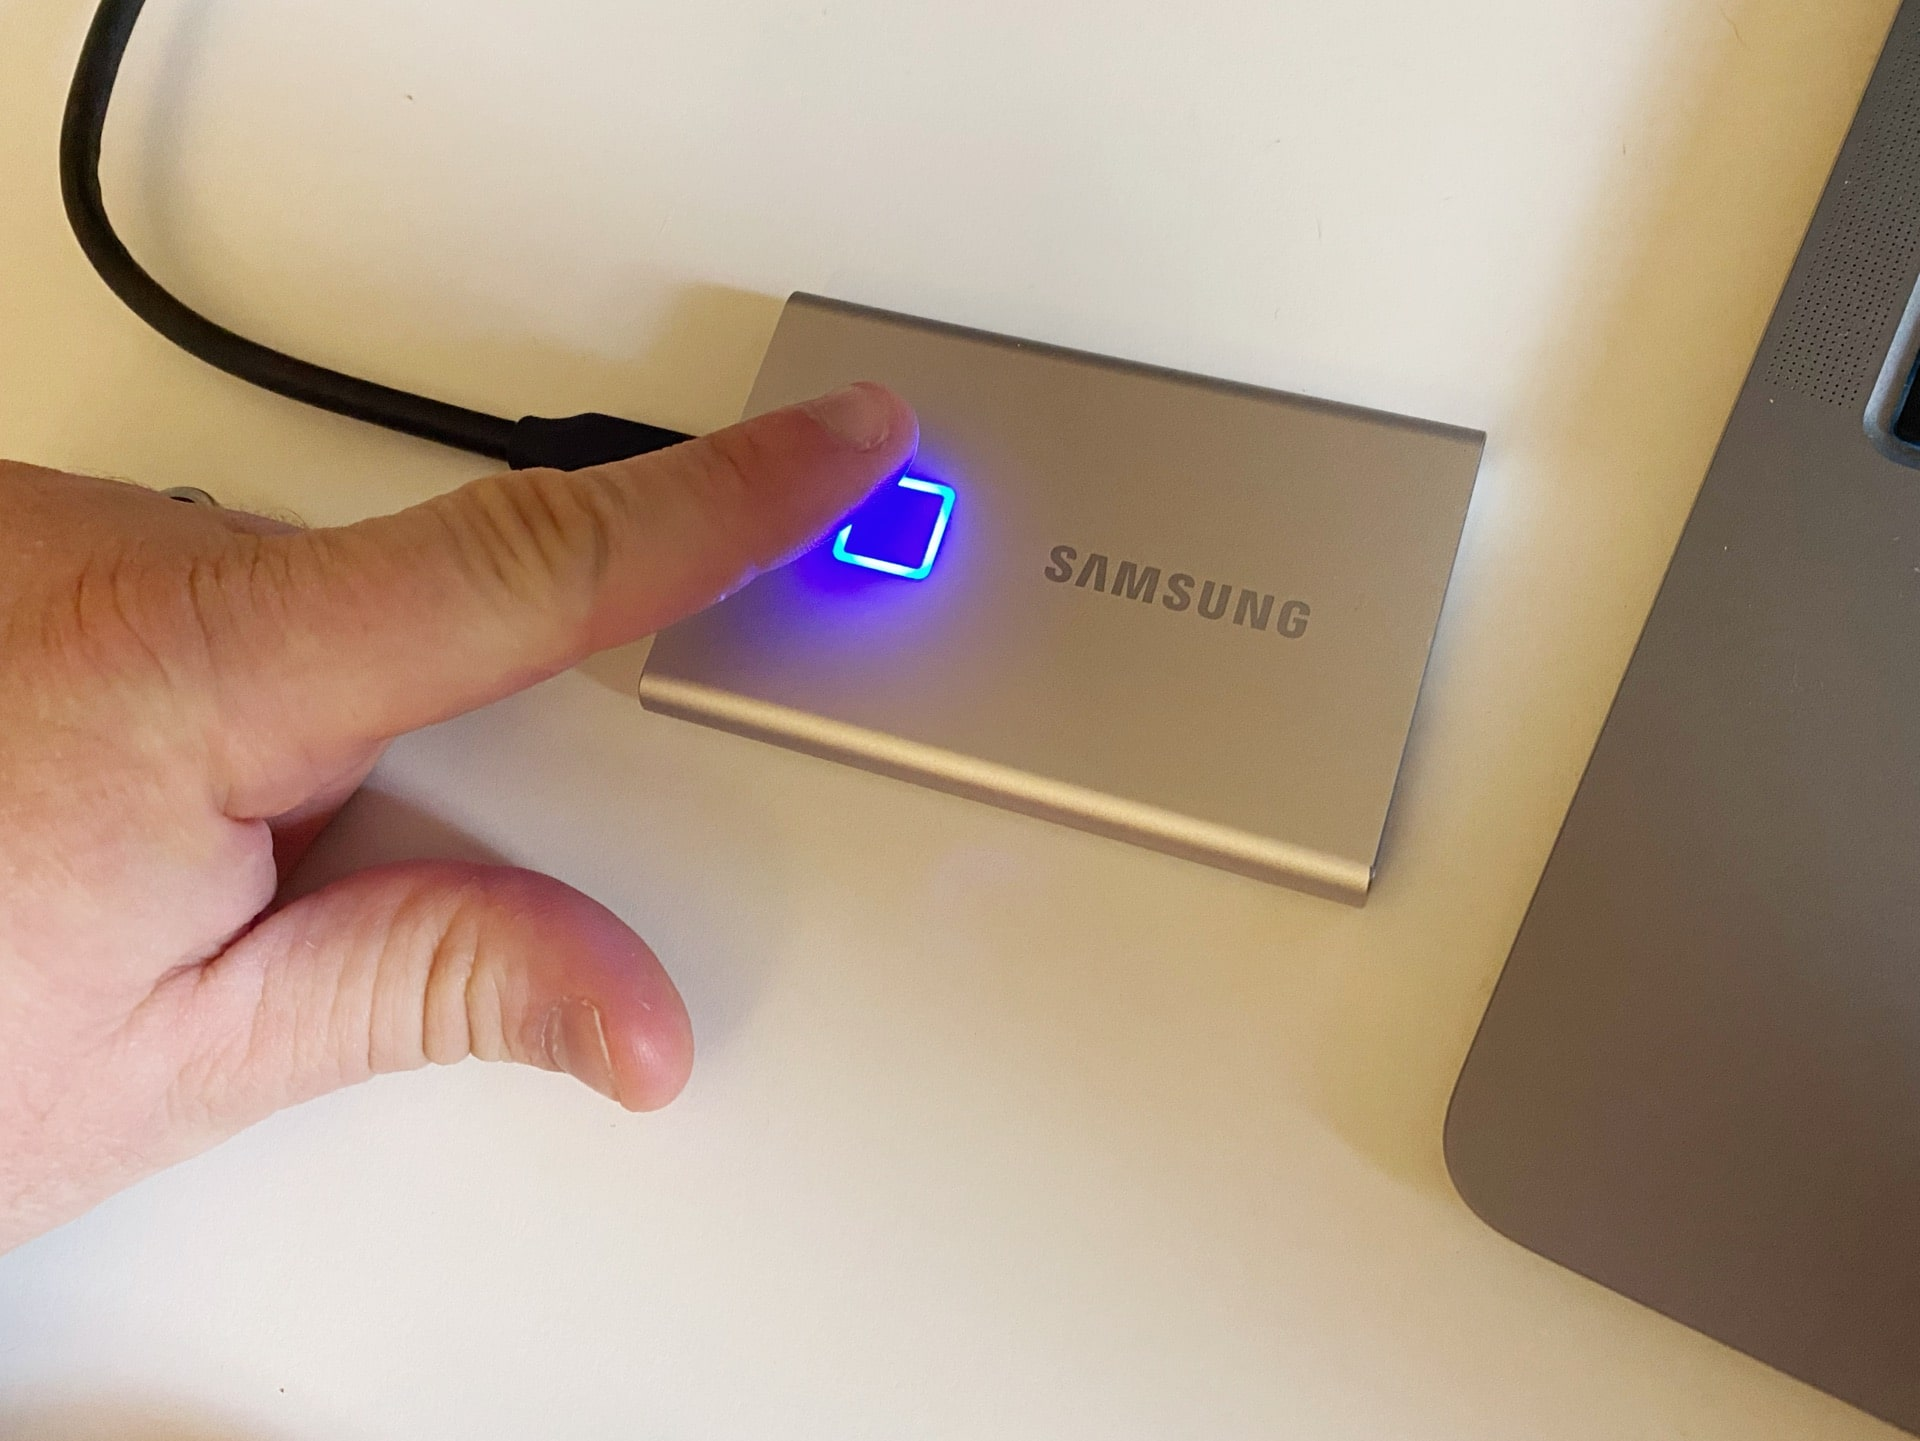 Samsung T7 SSD review